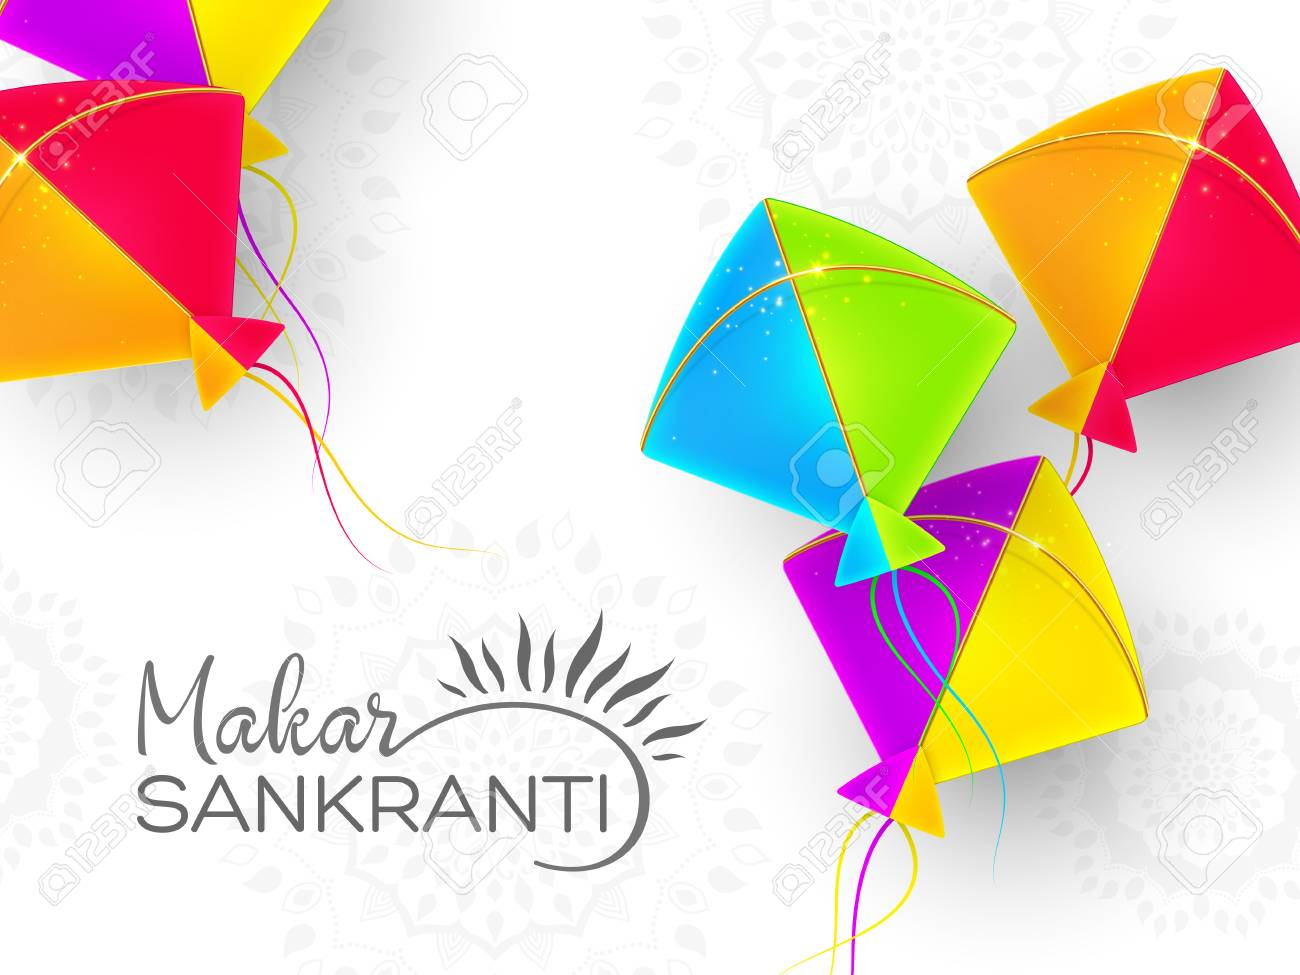 Makar Sankranti Holiday Design With Colorful Kites White 1300x975